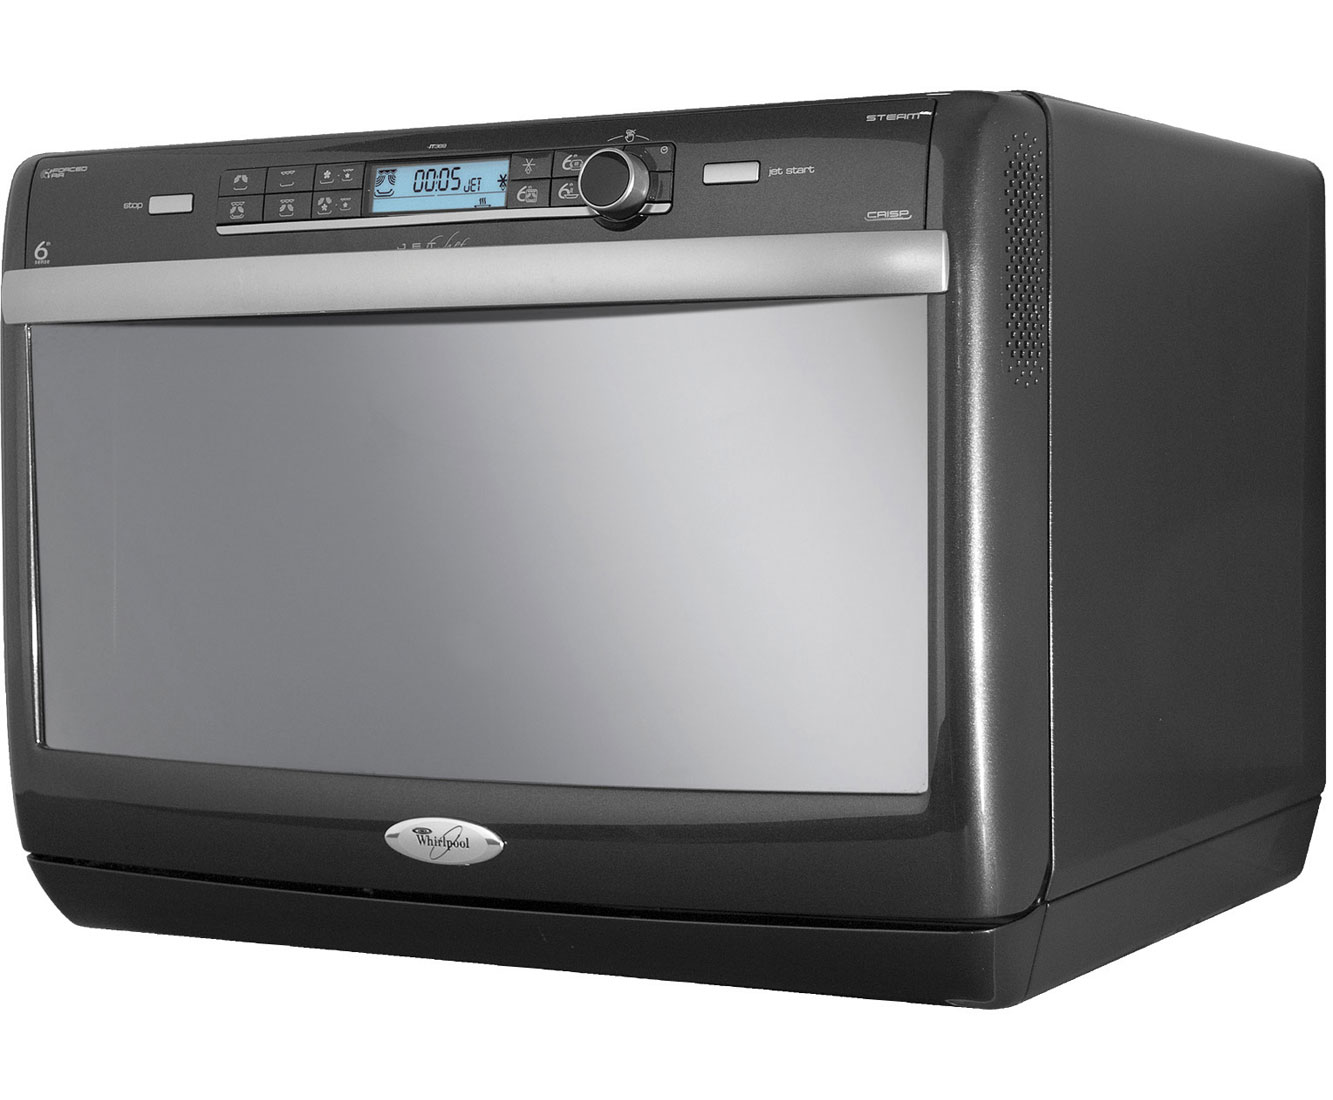 Whirlpool JT369/MIR 31 Litre Combination Microwave Oven - Anthracite